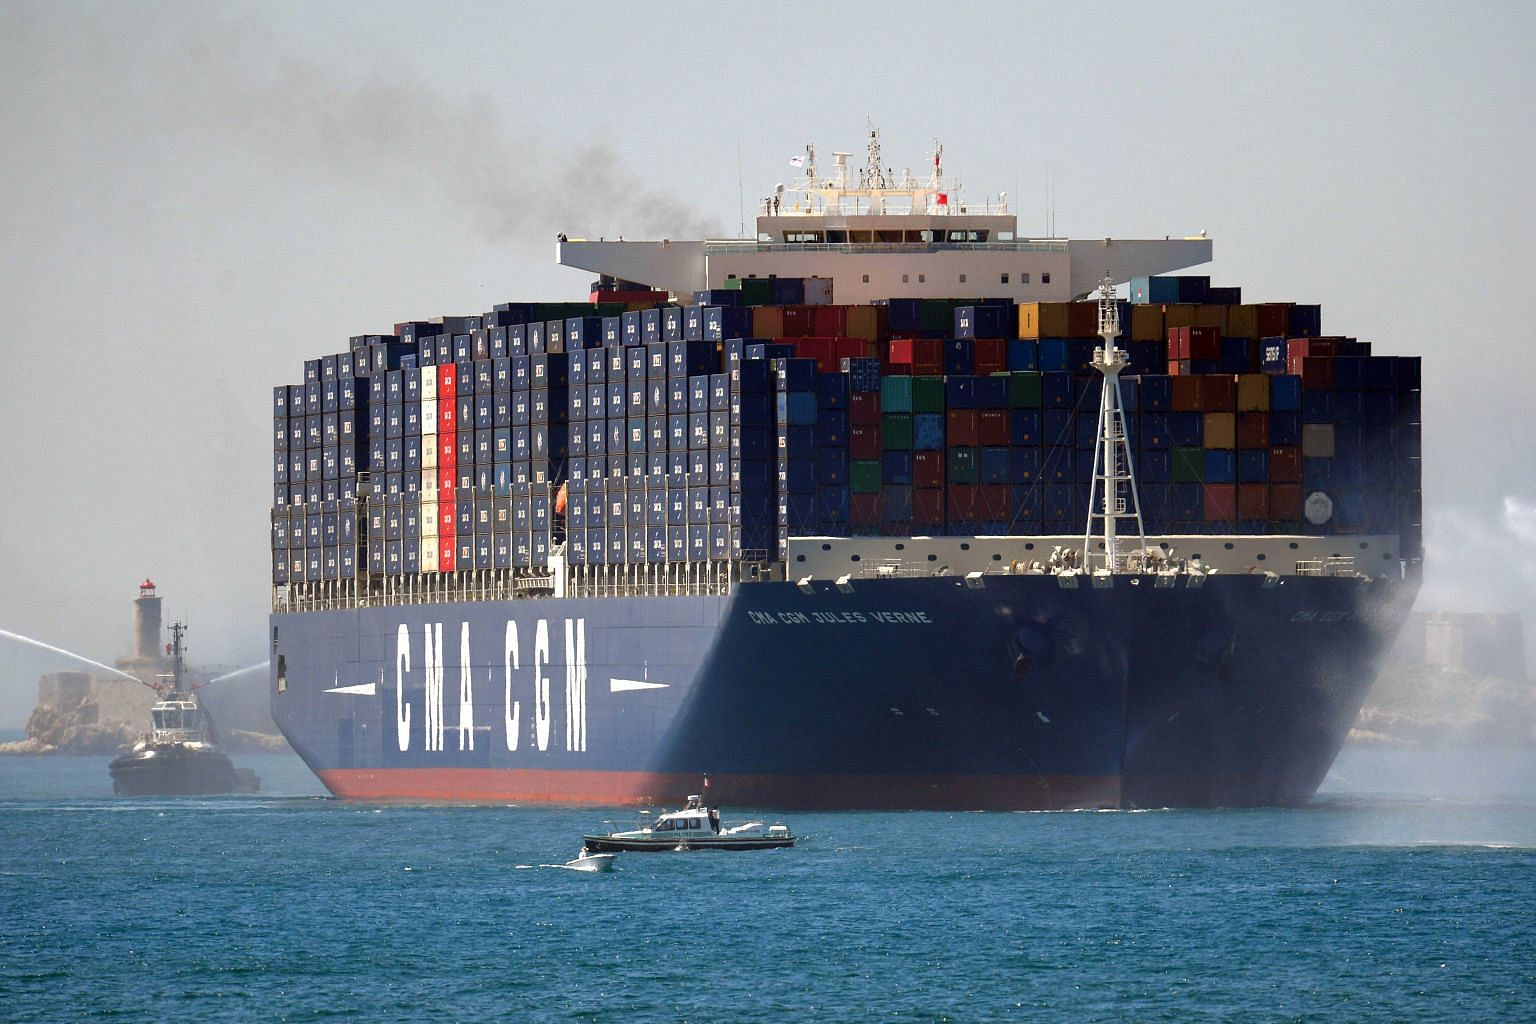 French shipping giant CMA CGM said that it plans to delist NOL. It needs more than 90 per cent of shares in order to do so.